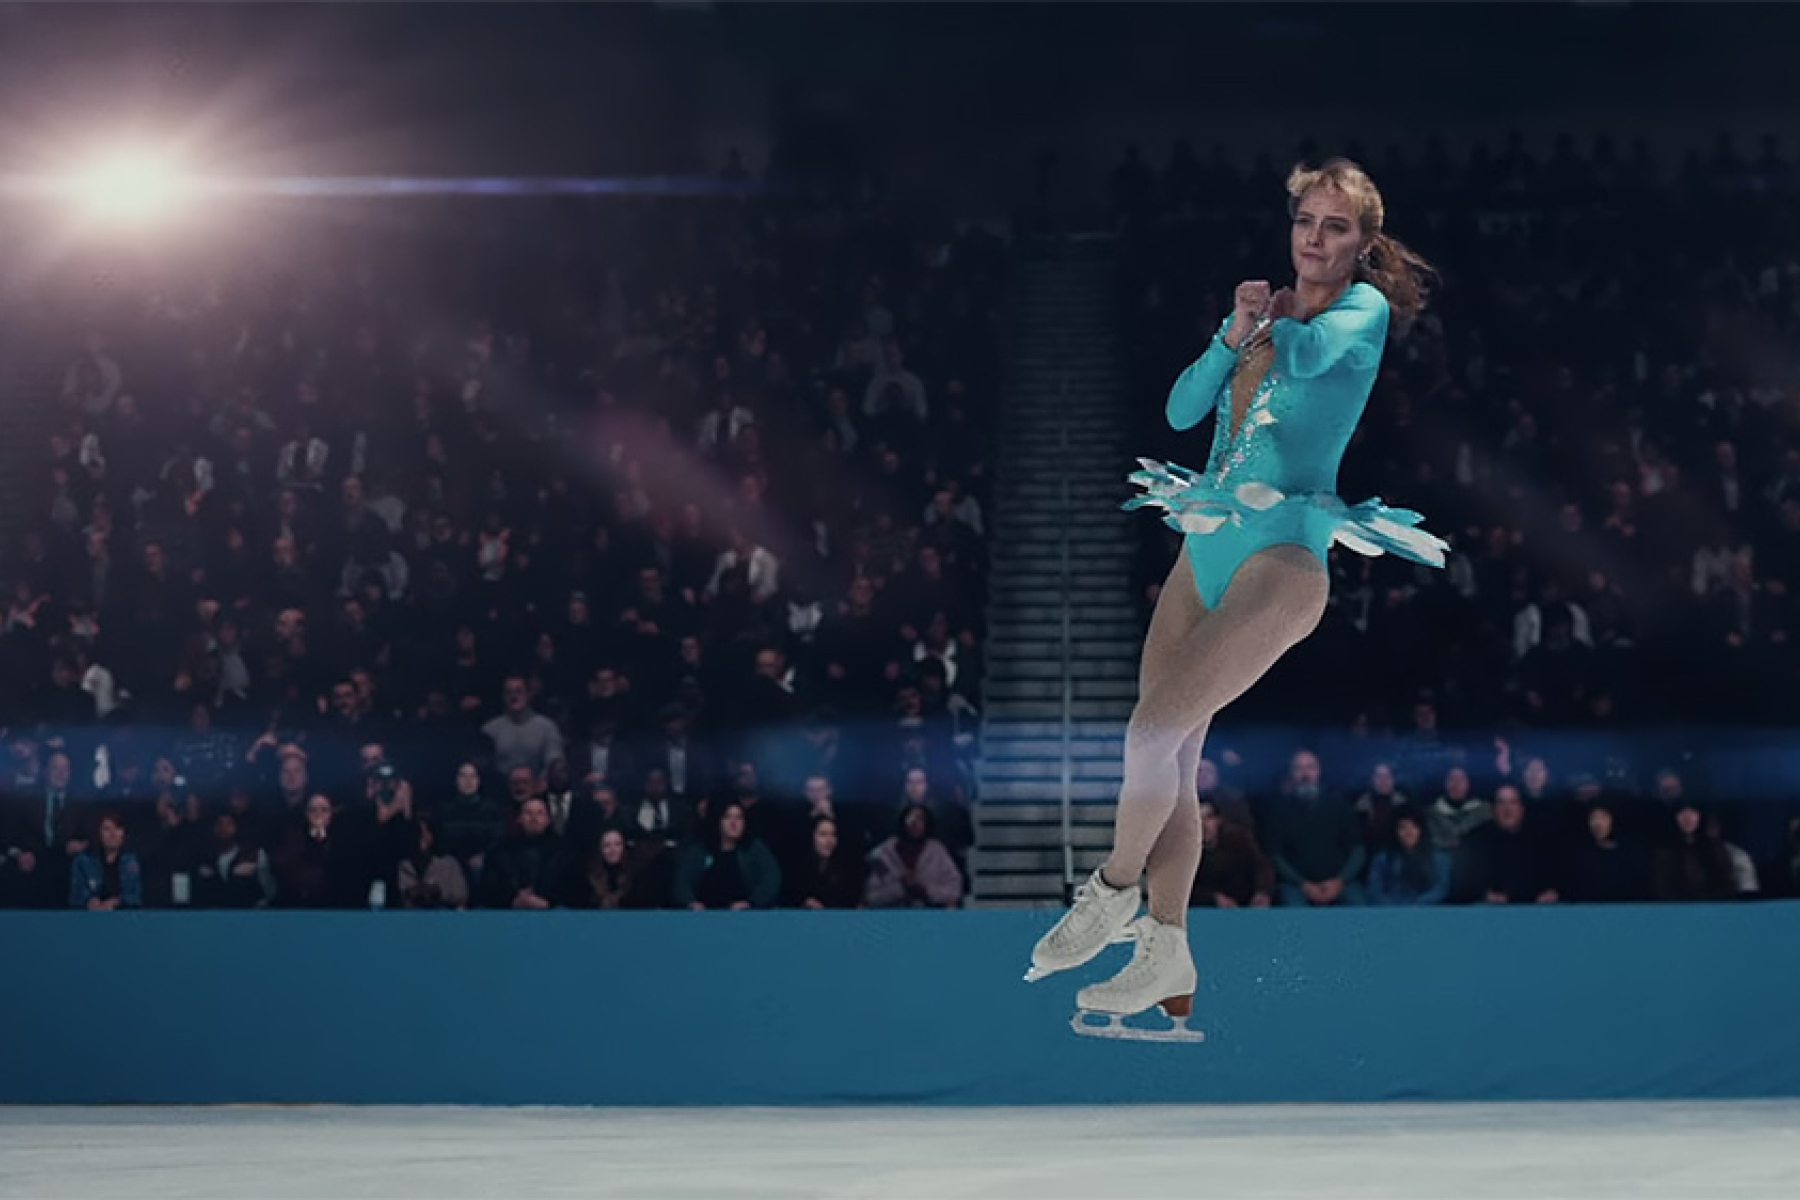 Peter Travers: 'I, Tonya' Is the Movie We Need Right Now - Rolling Stone